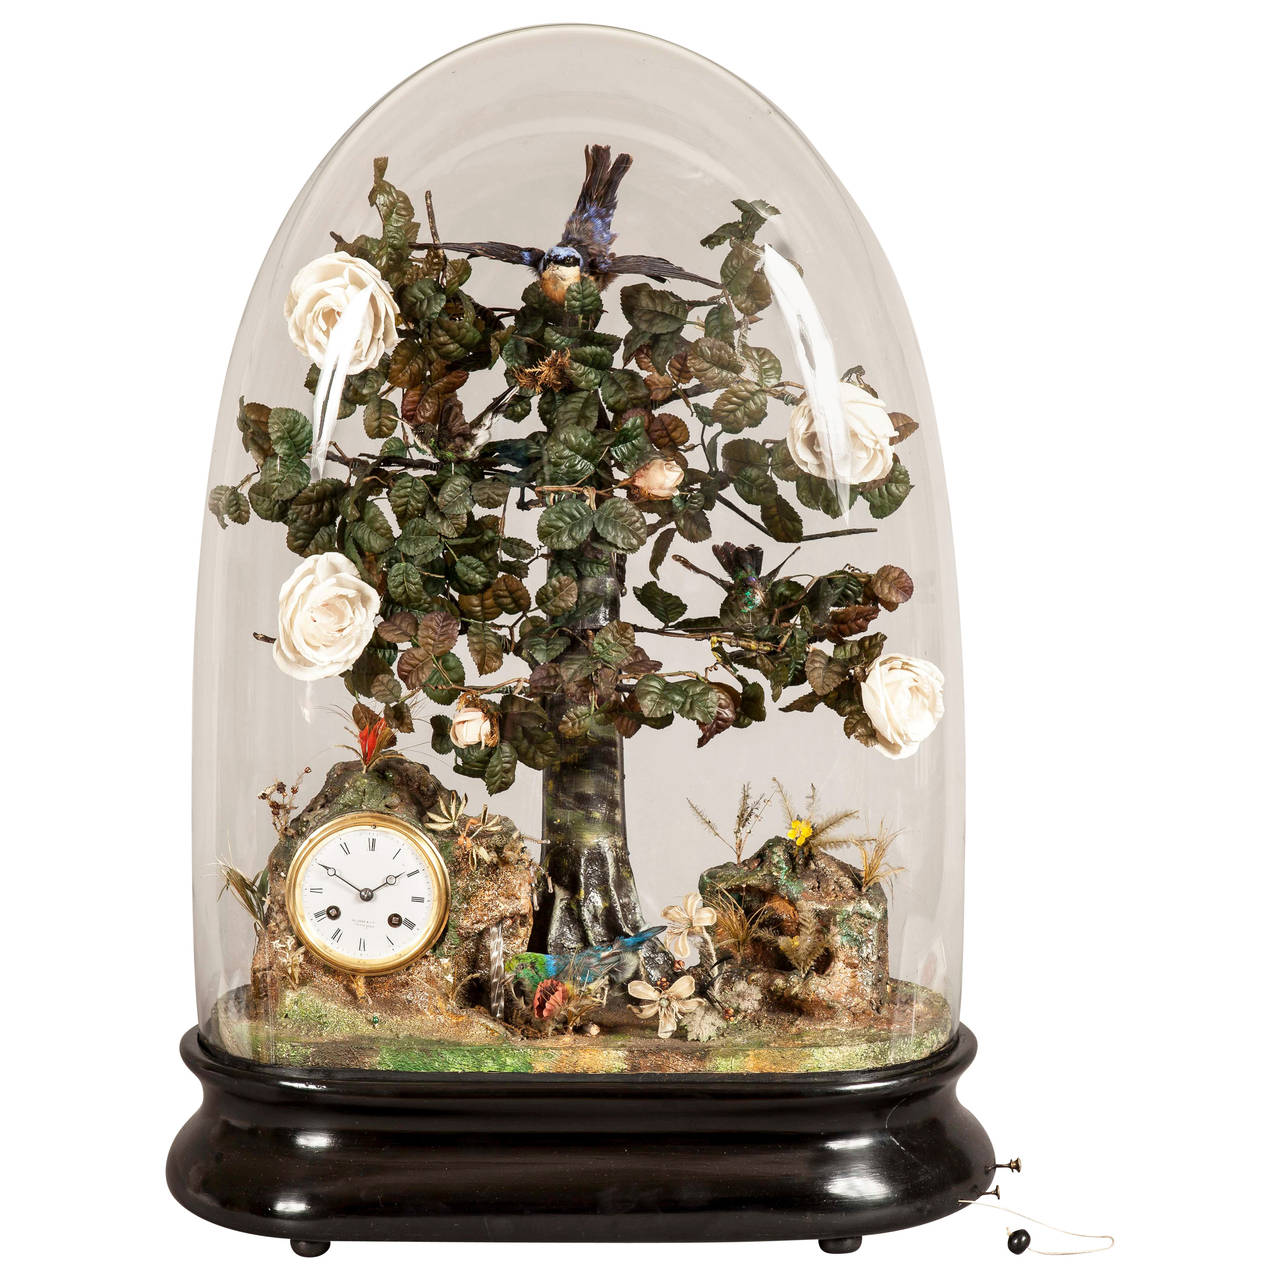 Automata Table Clock by Nathan & Co. of Birmingham